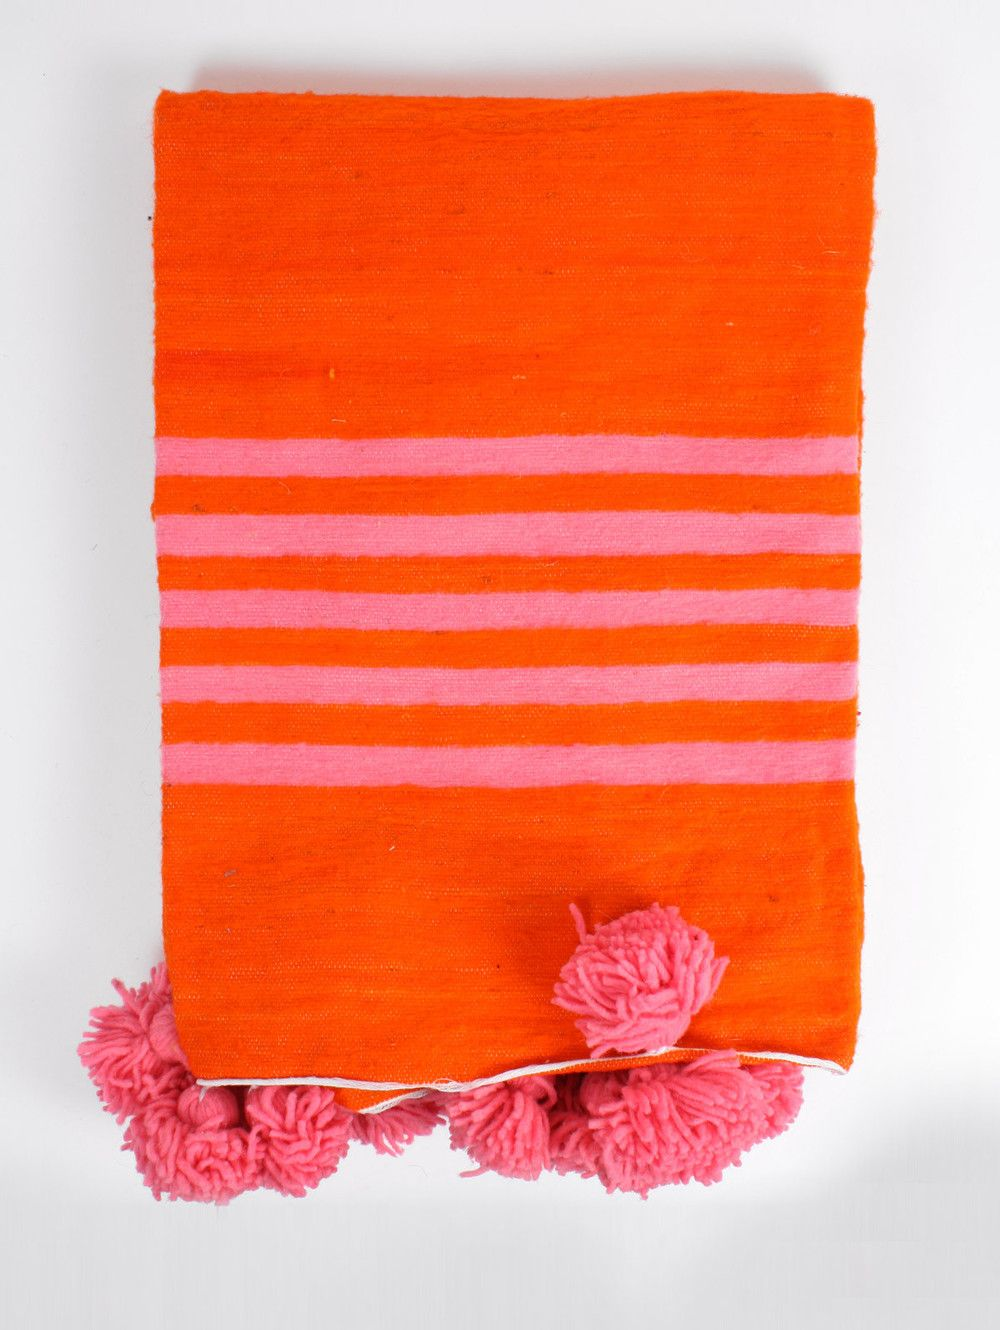 A traditional handwoven Moroccan throw in bright orange with pink stripes  and decorated with beautiful wool pom poms.      * Handwoven in Morocco     * 100%Wool     * Size: Large 2 x 3 m / 6.56'x 9.8' ft